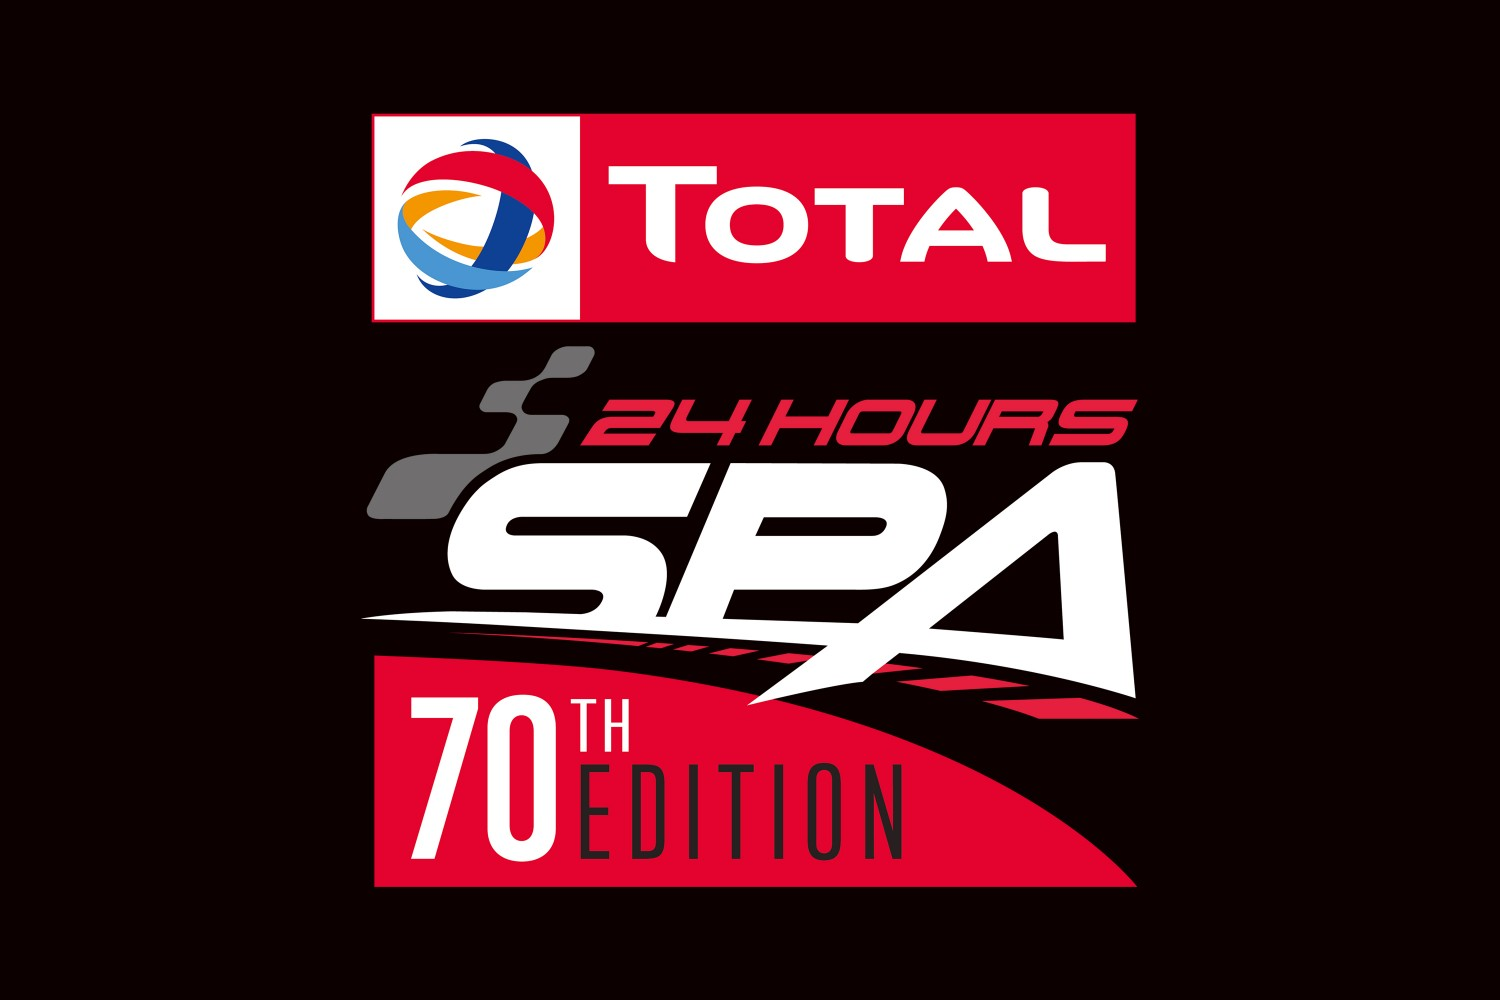 70th edition of Total 24 Hours of Spa kicks off with new logo